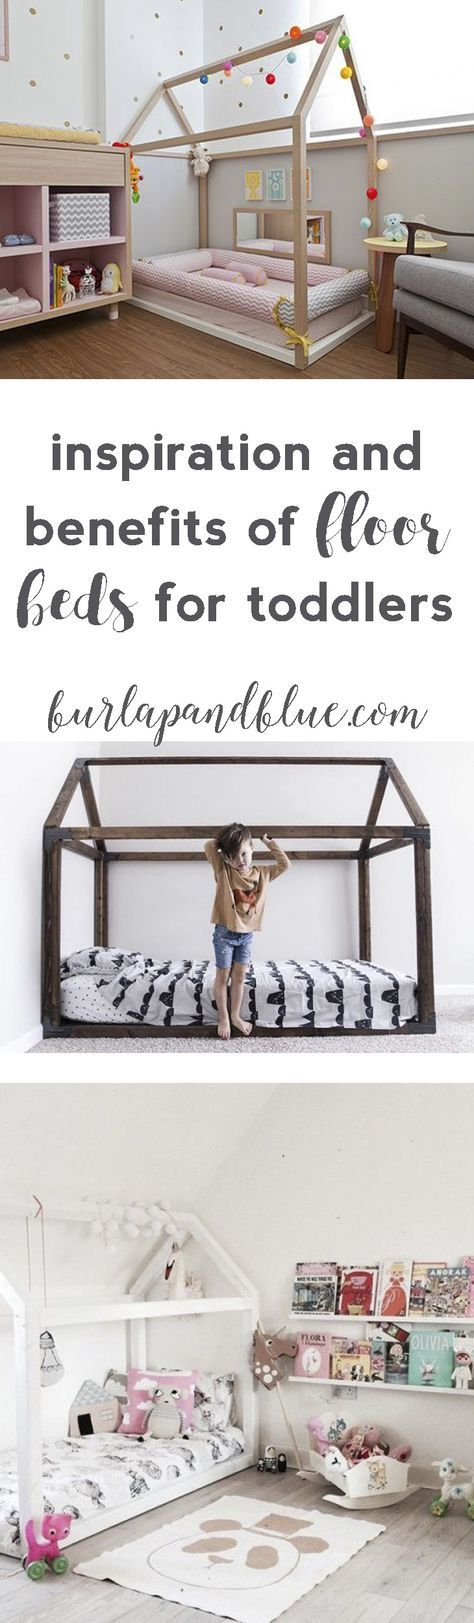 Floor Beds Toddlers Nurseries Kids And Toddler Rooms Bed Ideas Childrens Room Parenting